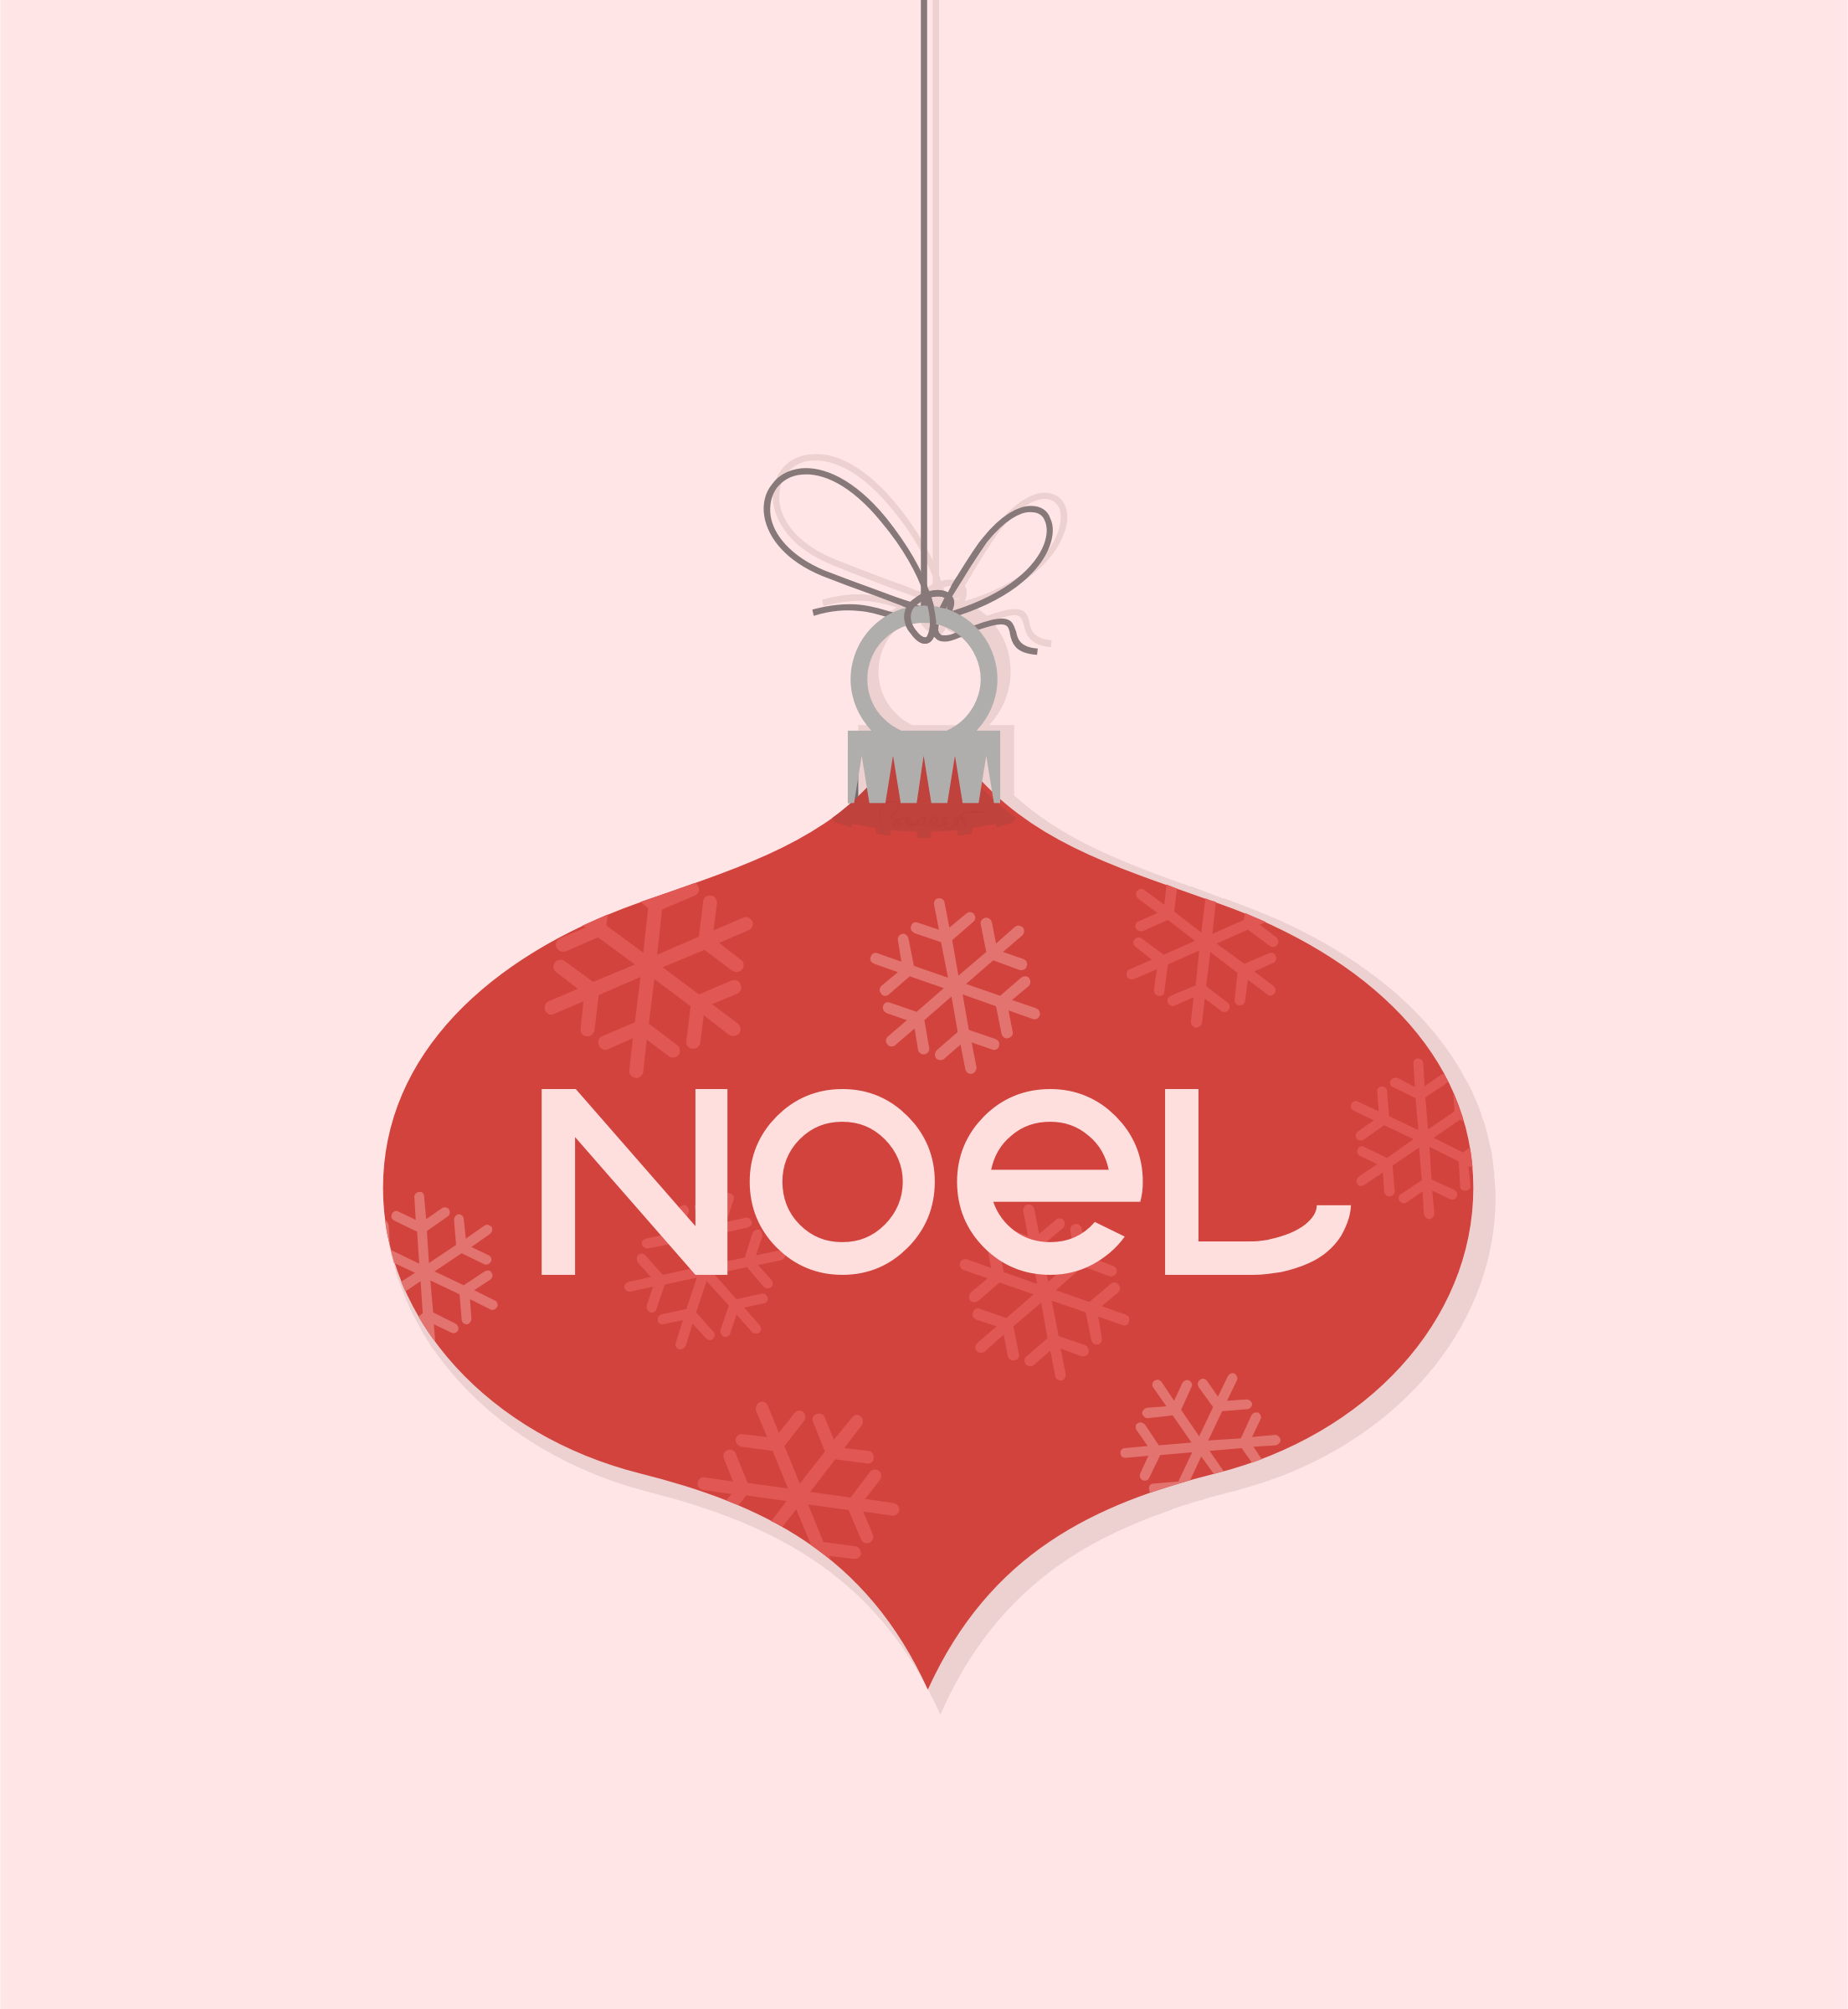 Clipart - Noel Christmas Ornament